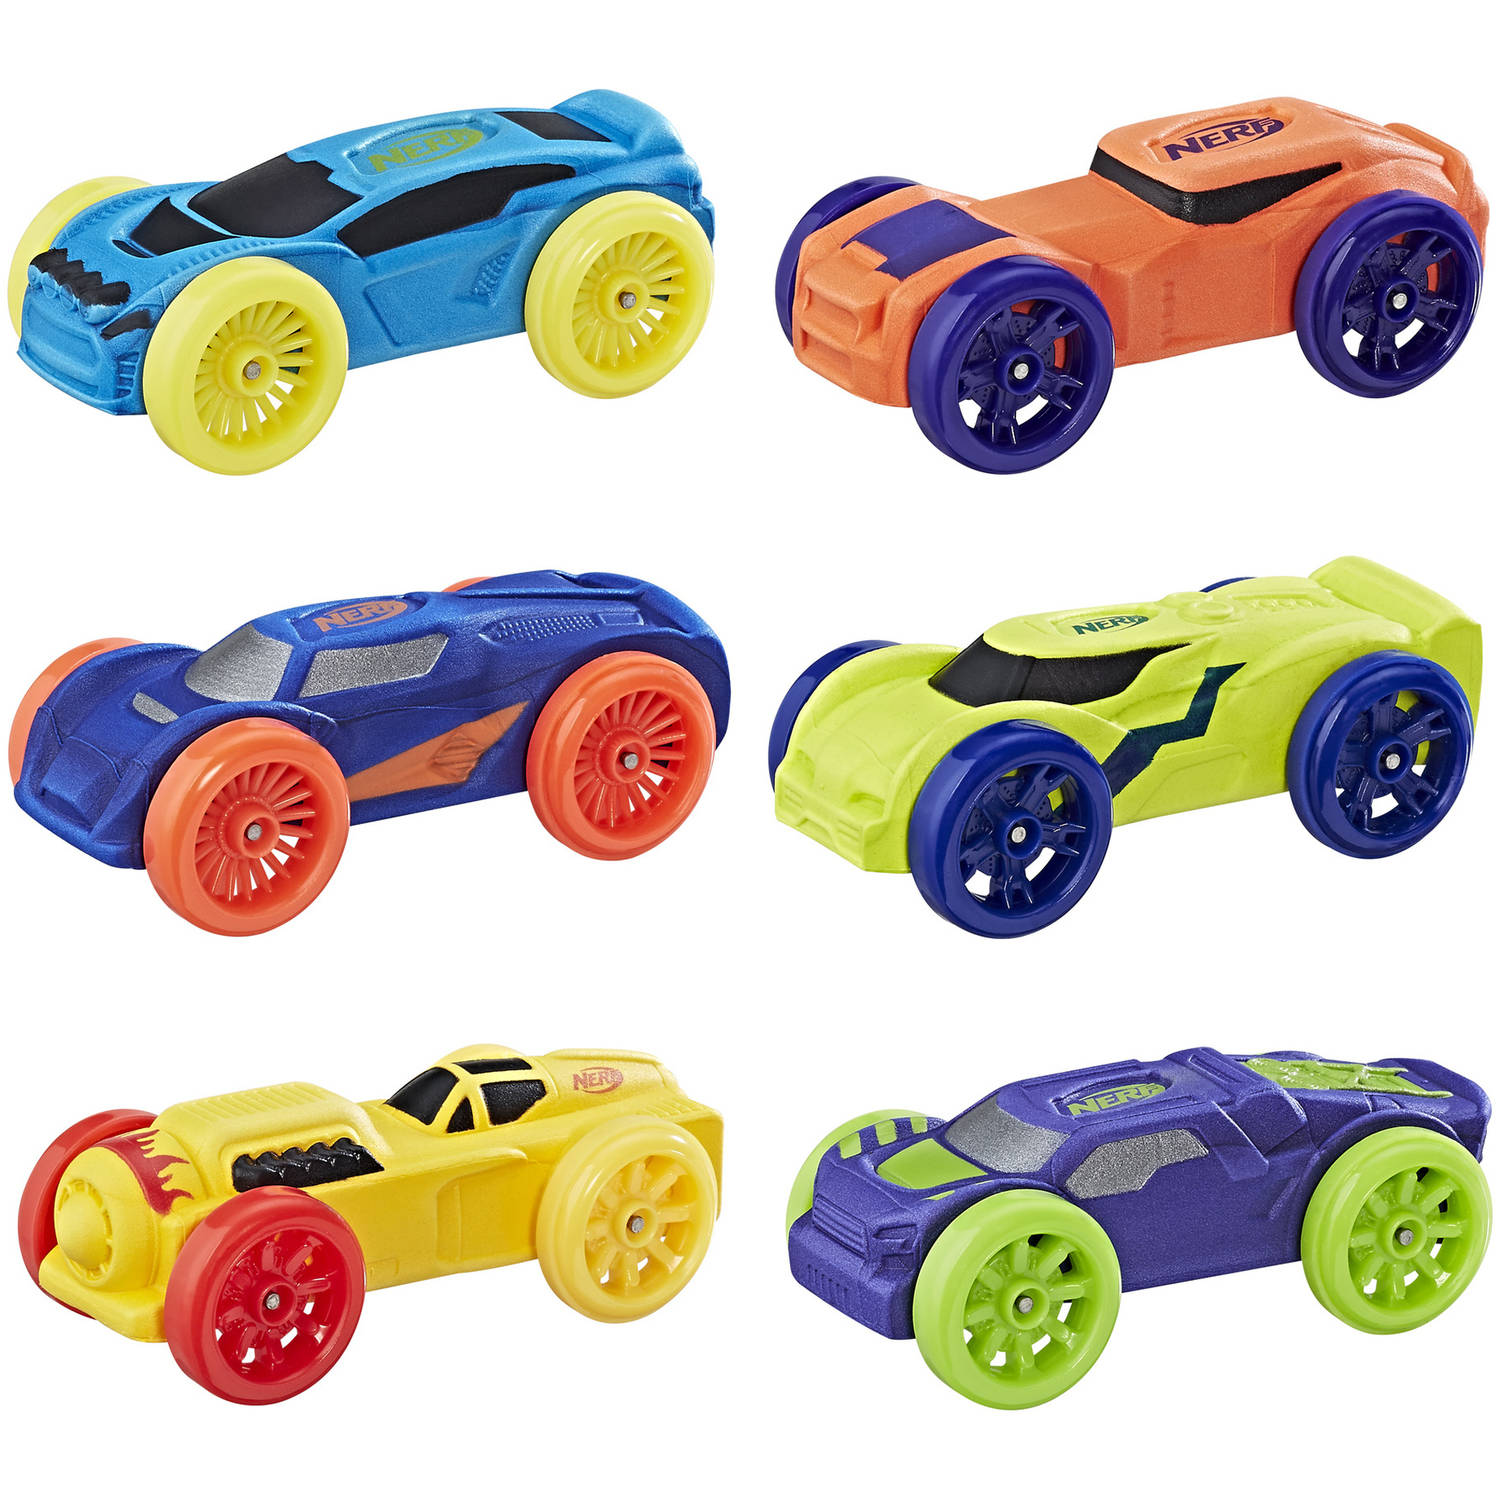 Nerf Nitro Foam Car 6-Pack (Version 2)